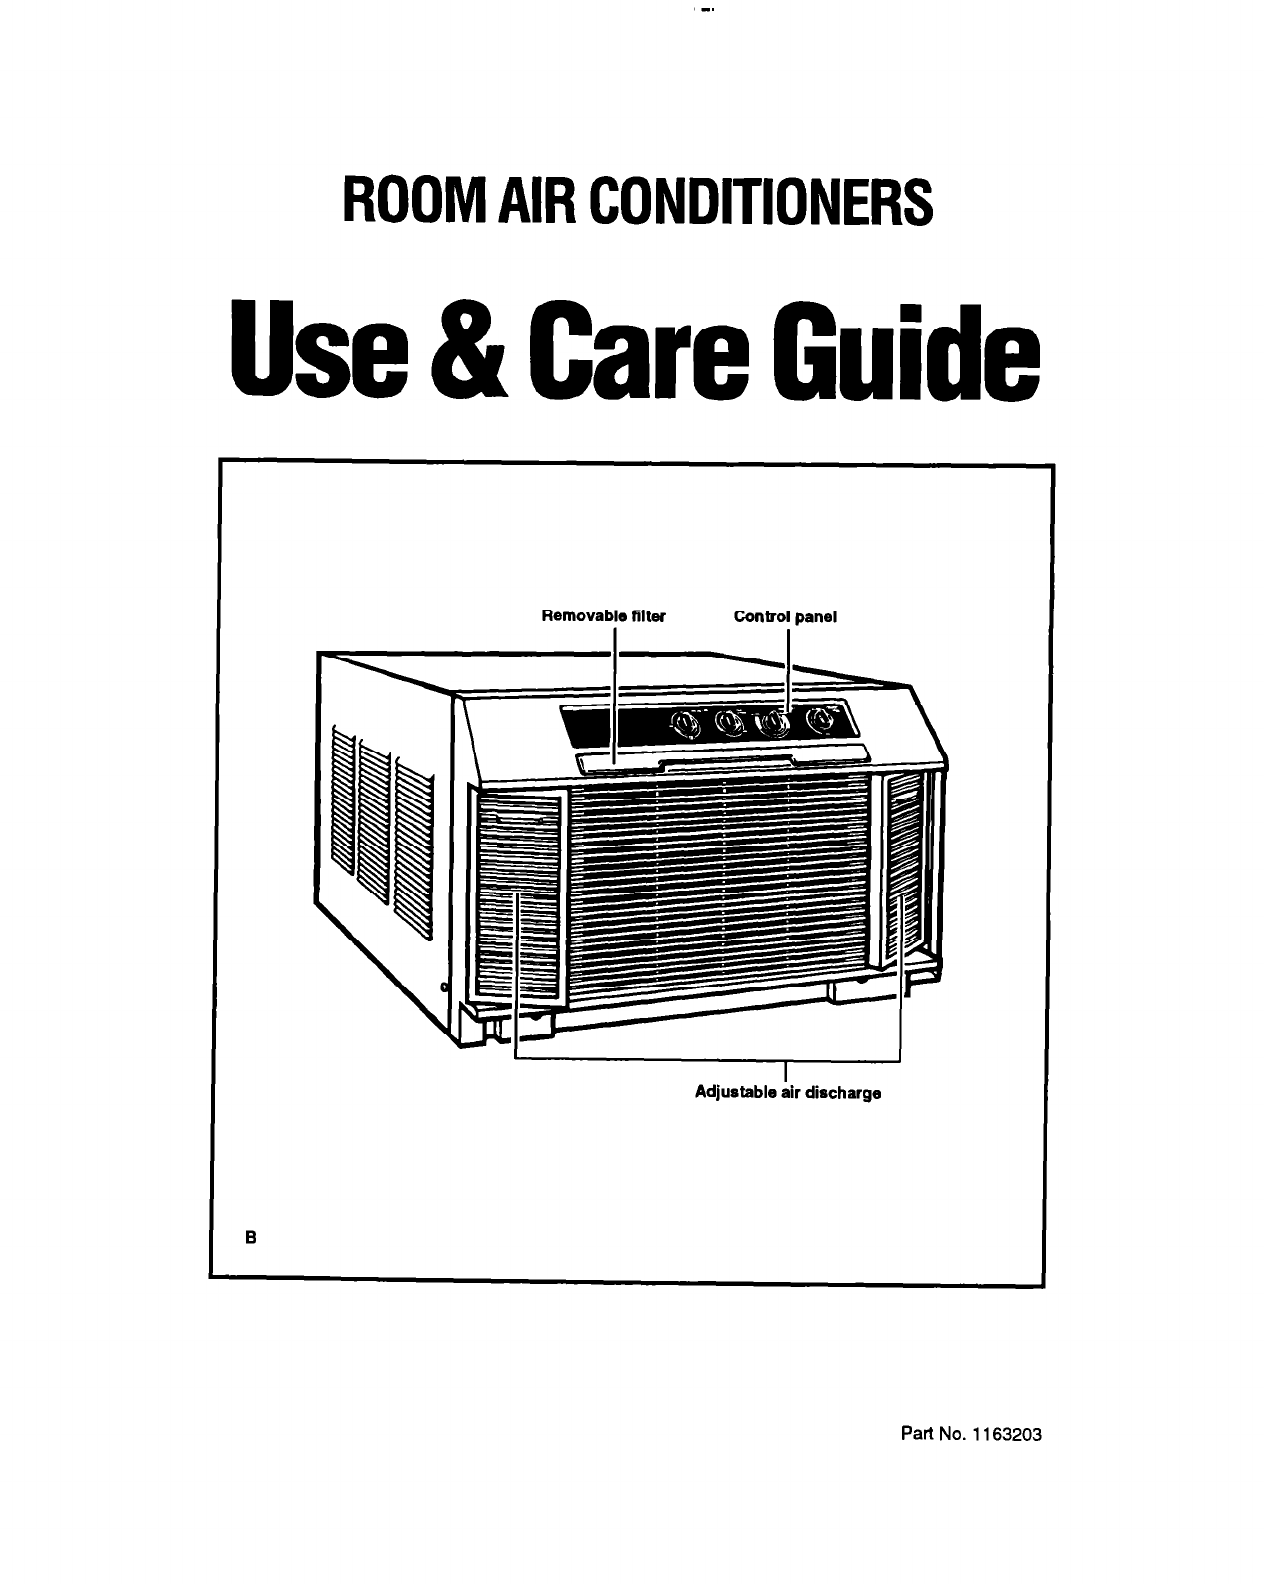 Whirlpool Air Conditioner RH123A1 User Guide